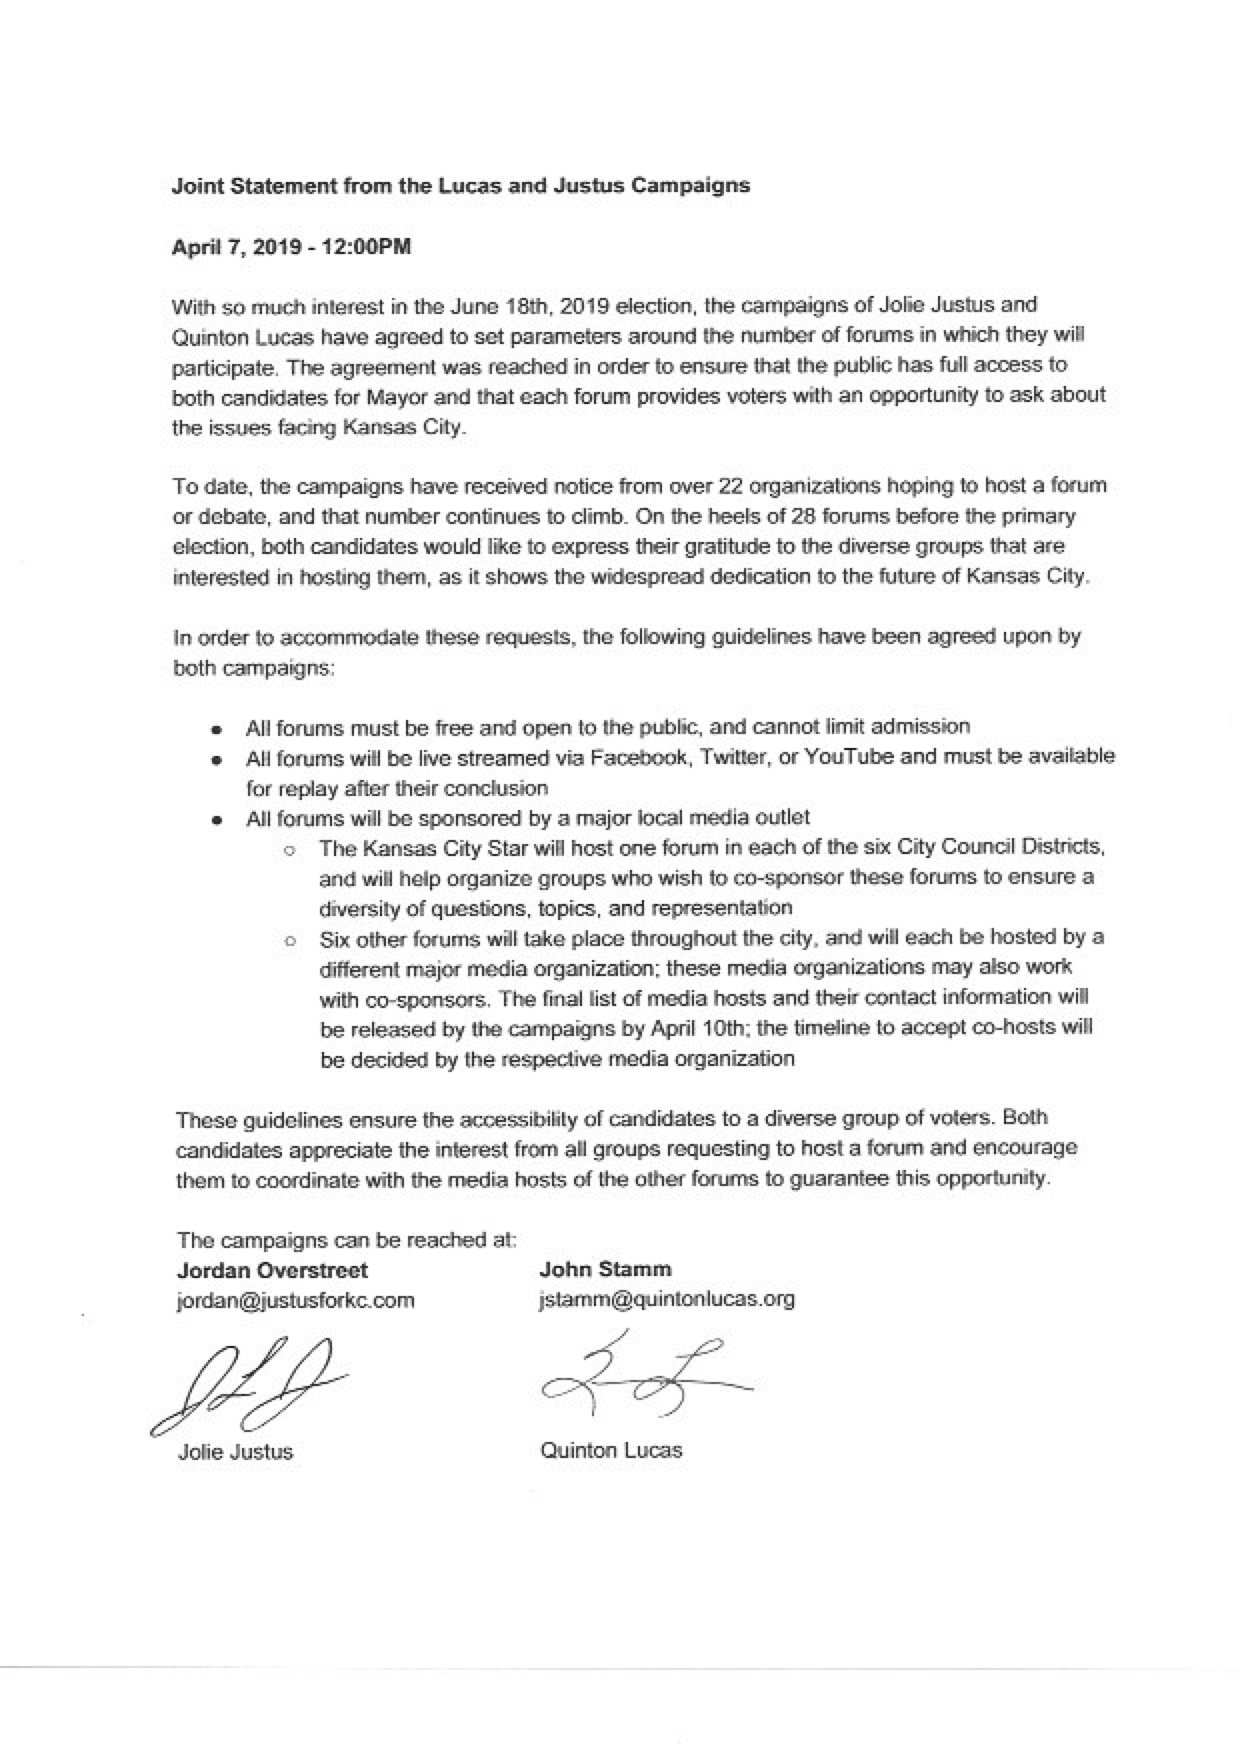 2019.04.07 Joint Statement on Mayoral Forums.jpg